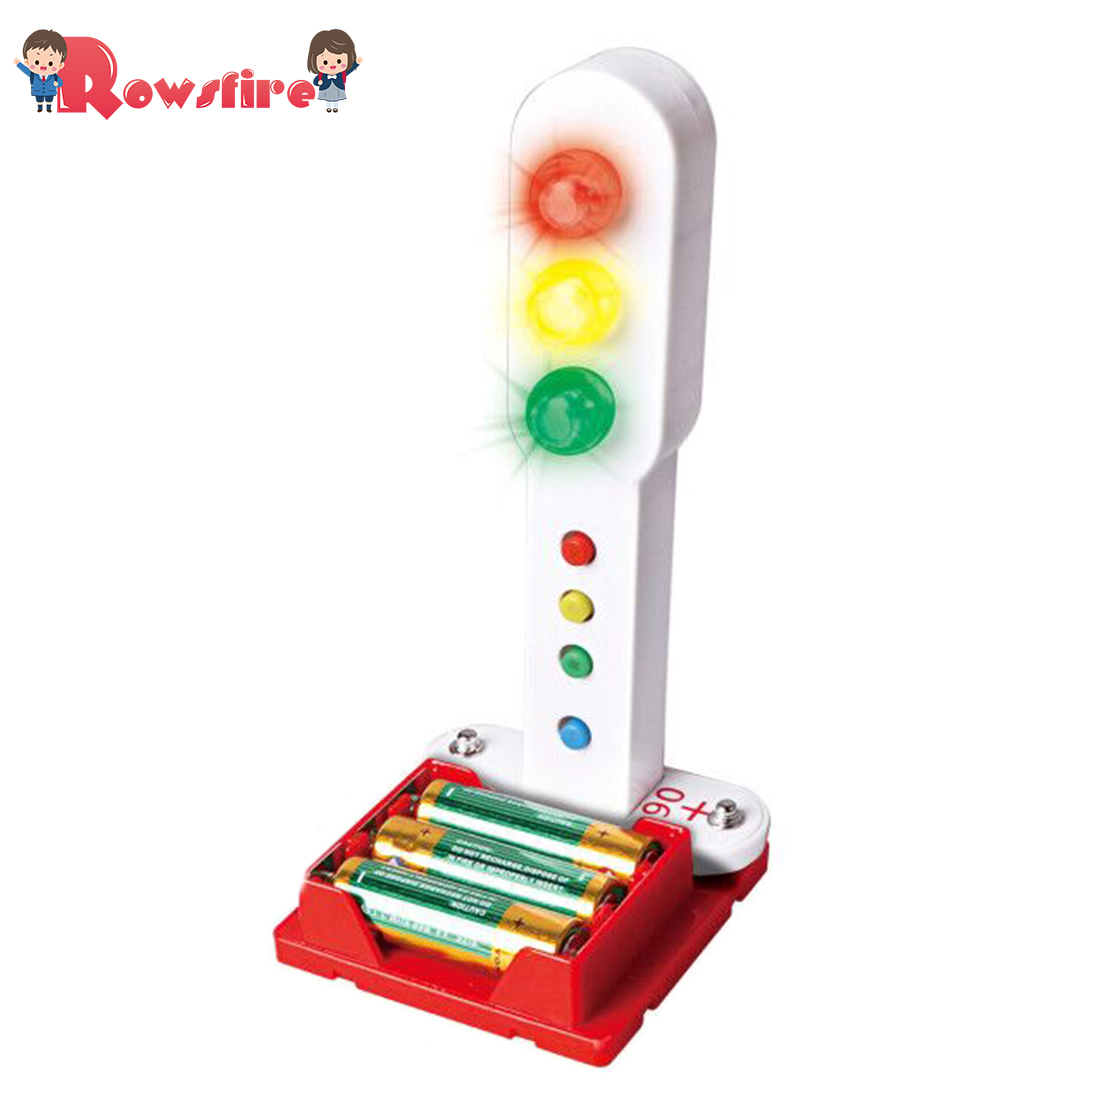 DIY Programmable Traffic Lights Electronic Circuits Science Experiment Kit For Children - Pagoda + Christmas Tree